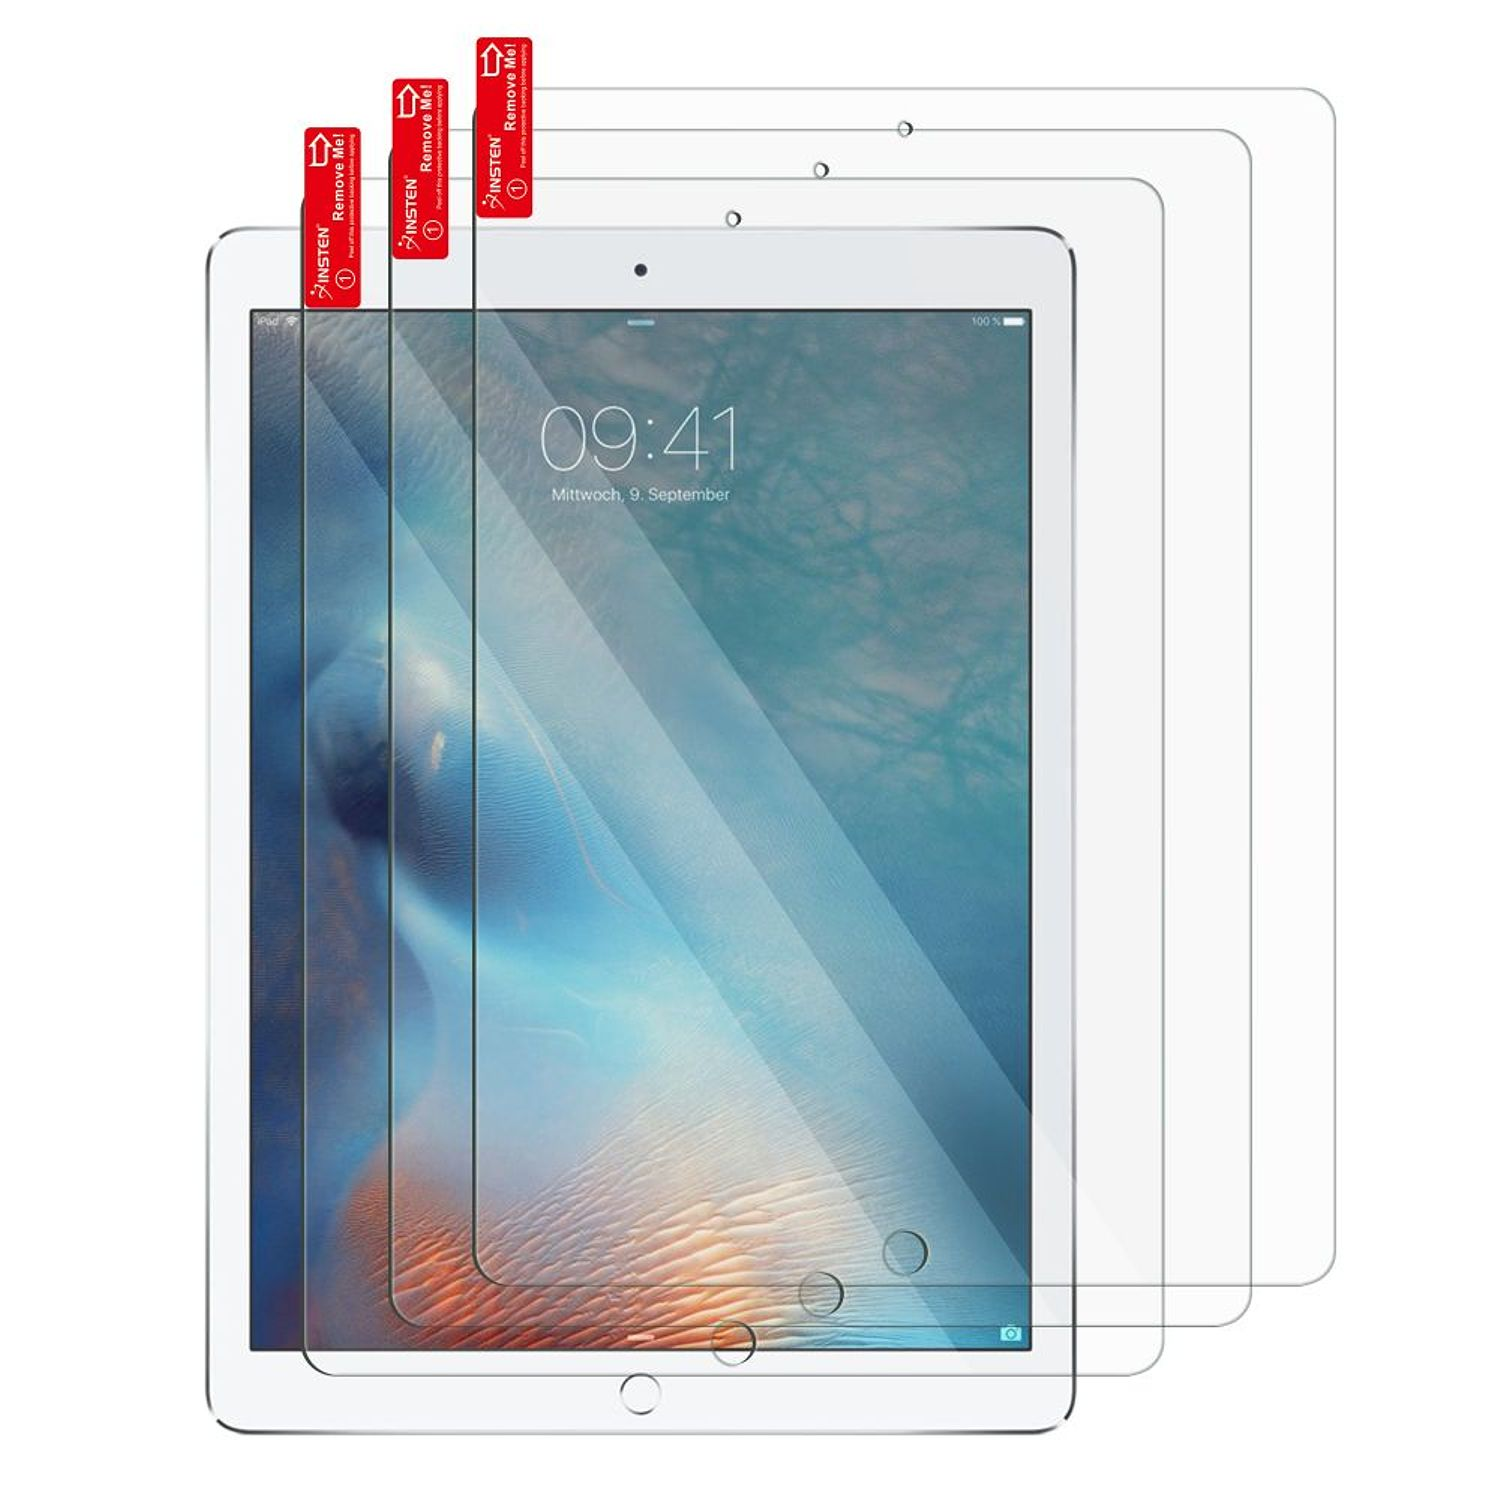 "iPad Pro 10.5 Screen Protector, by Insten 3-Pack Clear Fully Protect Screen Protector LCD Film For Apple iPad Pro 10.5"" (Anti-Scratch, Bubble-free)"